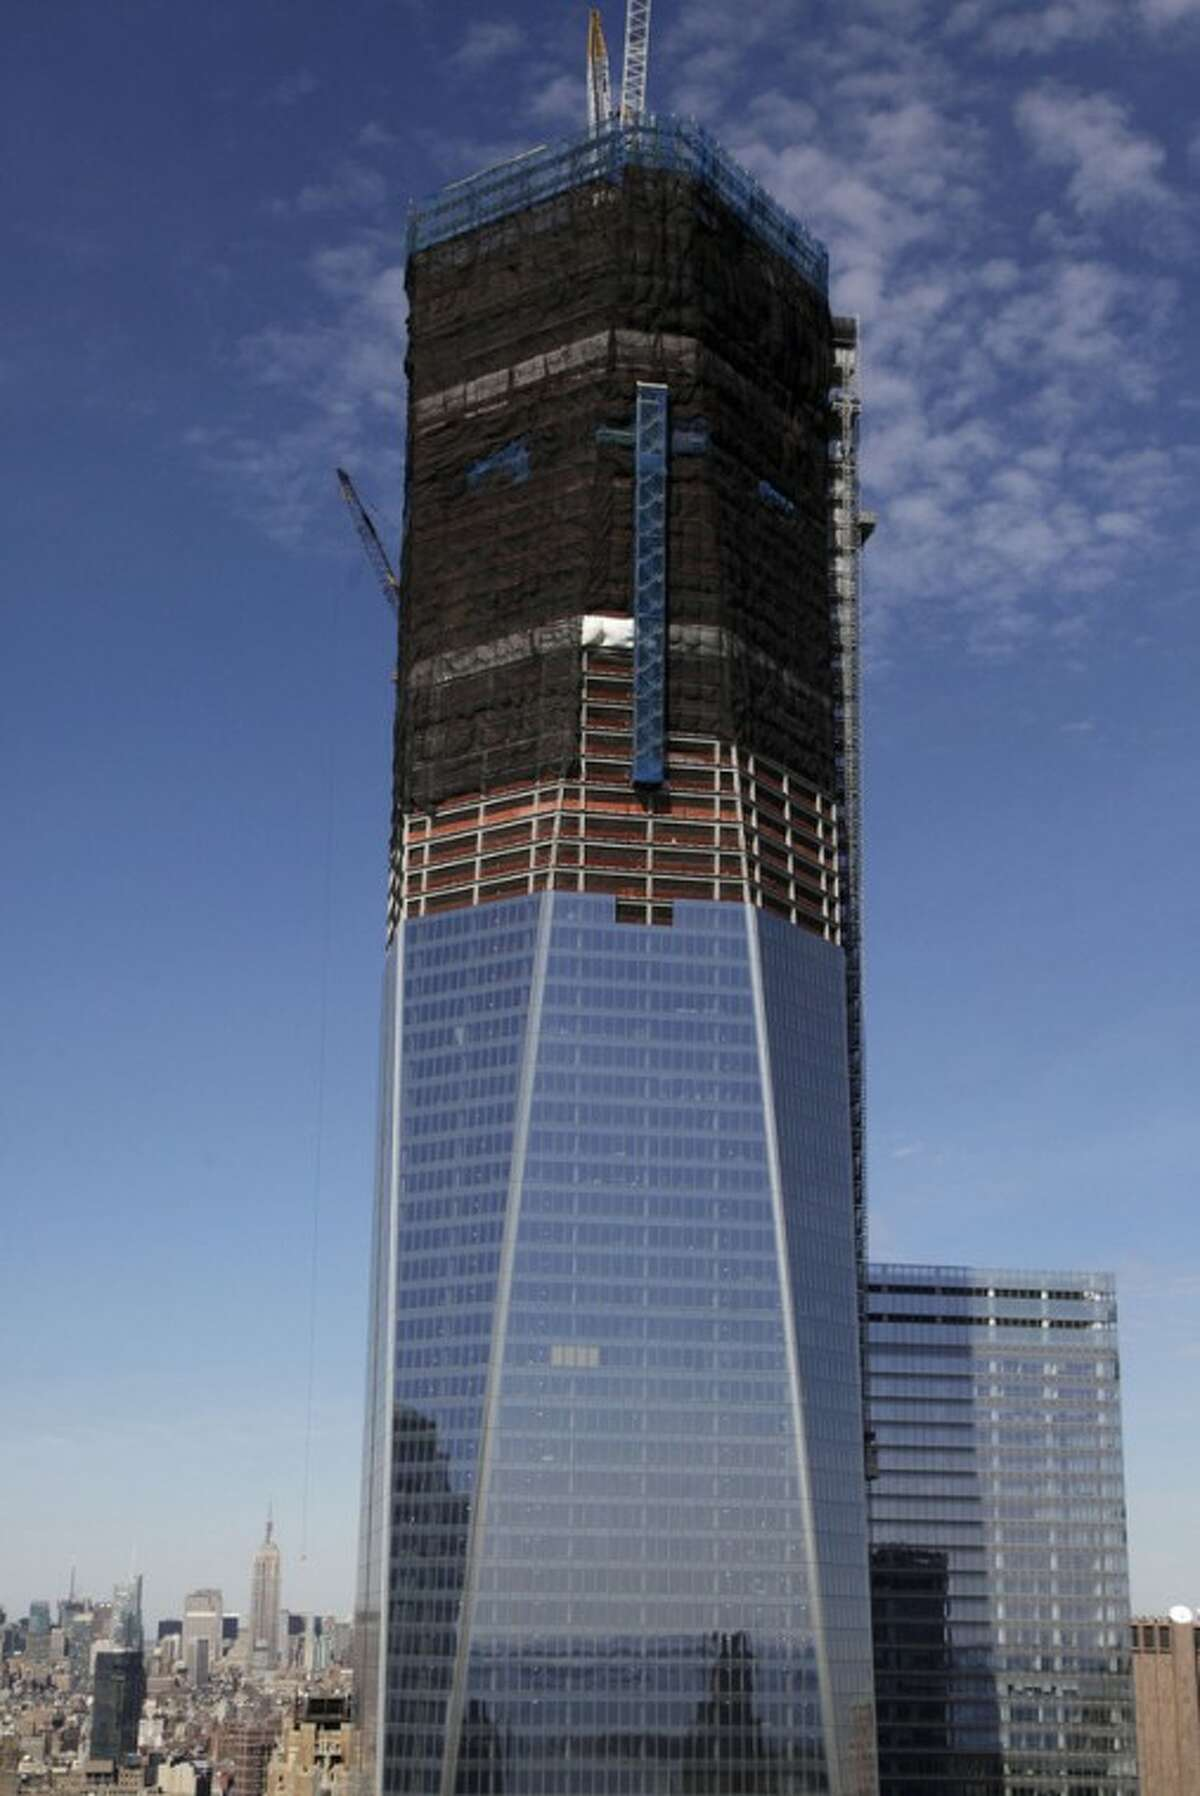 FILE- In this April 17, 2012, file photo, One World Trade Center, now up to 100 floors, rises above the Manhattan skyline in New York. On Monday, April 30, One World Trade Center _ being built to replace the twin towers destroyed on 9/11 _ gets steel columns to make its unfinished framework a little higher than the Empire State Building's observation deck, to become the tallest building in New York. (AP Photo/Mark Lennihan)